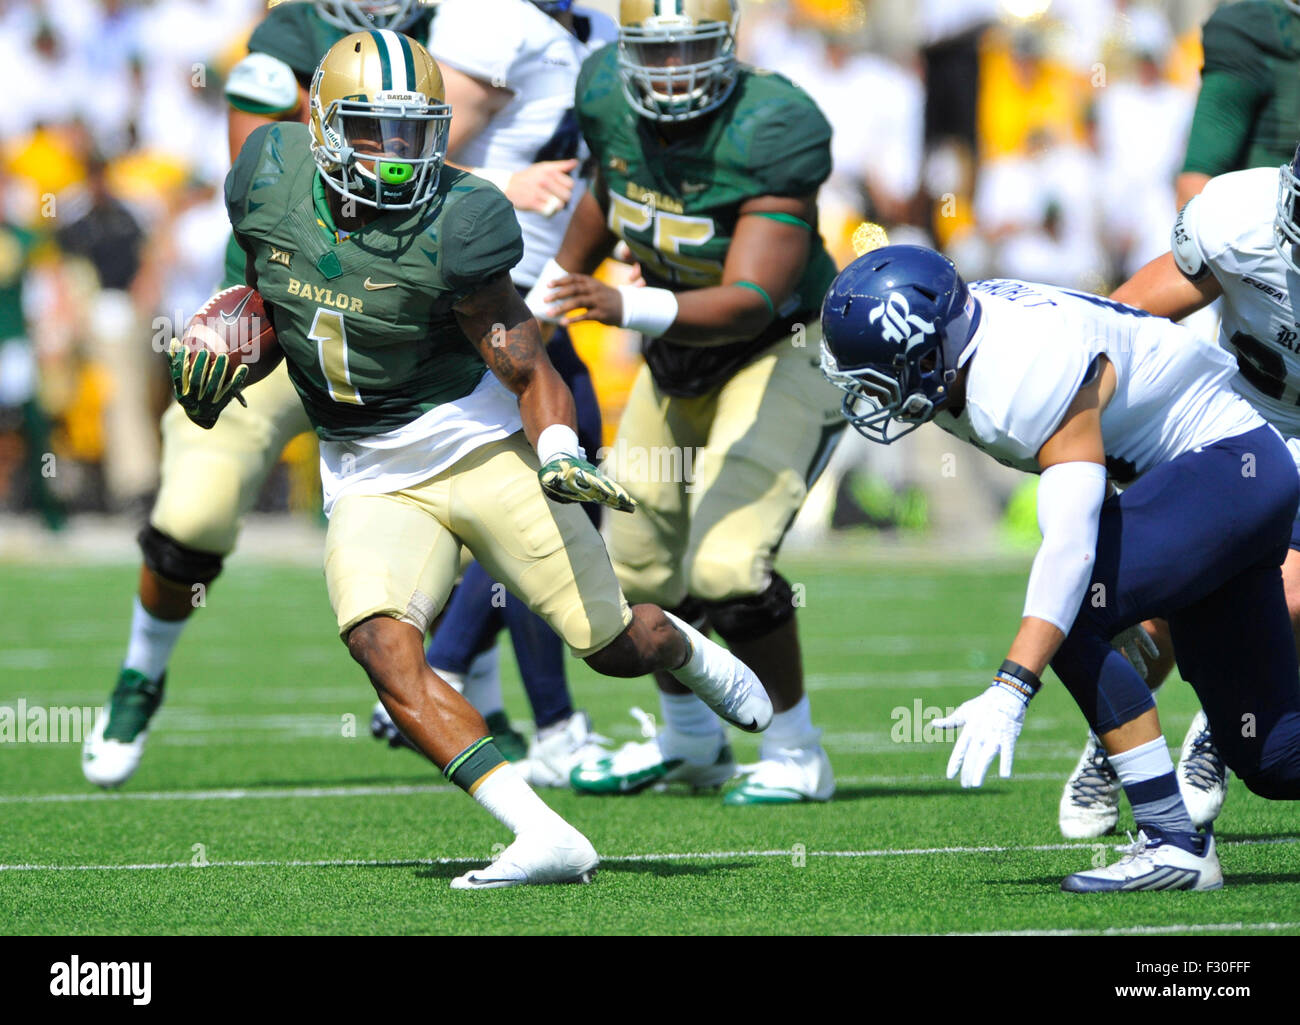 September 26, 2015: Baylor receiver Corey Coleman (1) tries to avoid a Rice defender during the first half of a Stock Photo